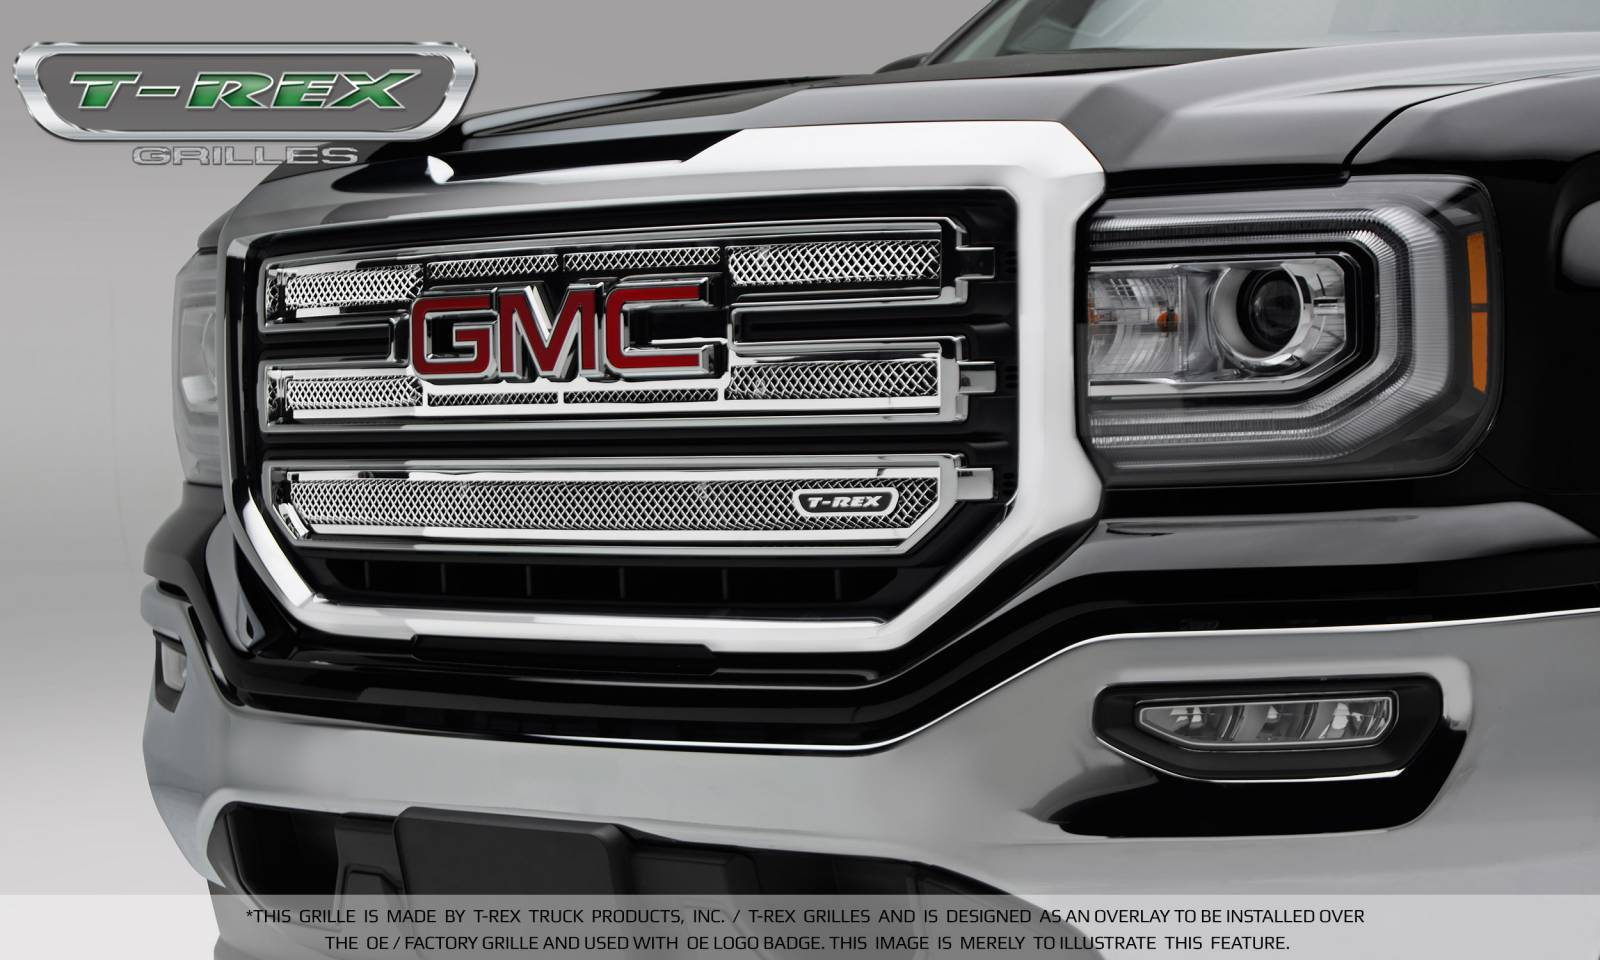 T-REX Grilles - T-REX GMC Sierra 1500 - SLT - Upper Class Main Grille - 2 PC Overlay - Polished Stainless Steel - Pt # 54215